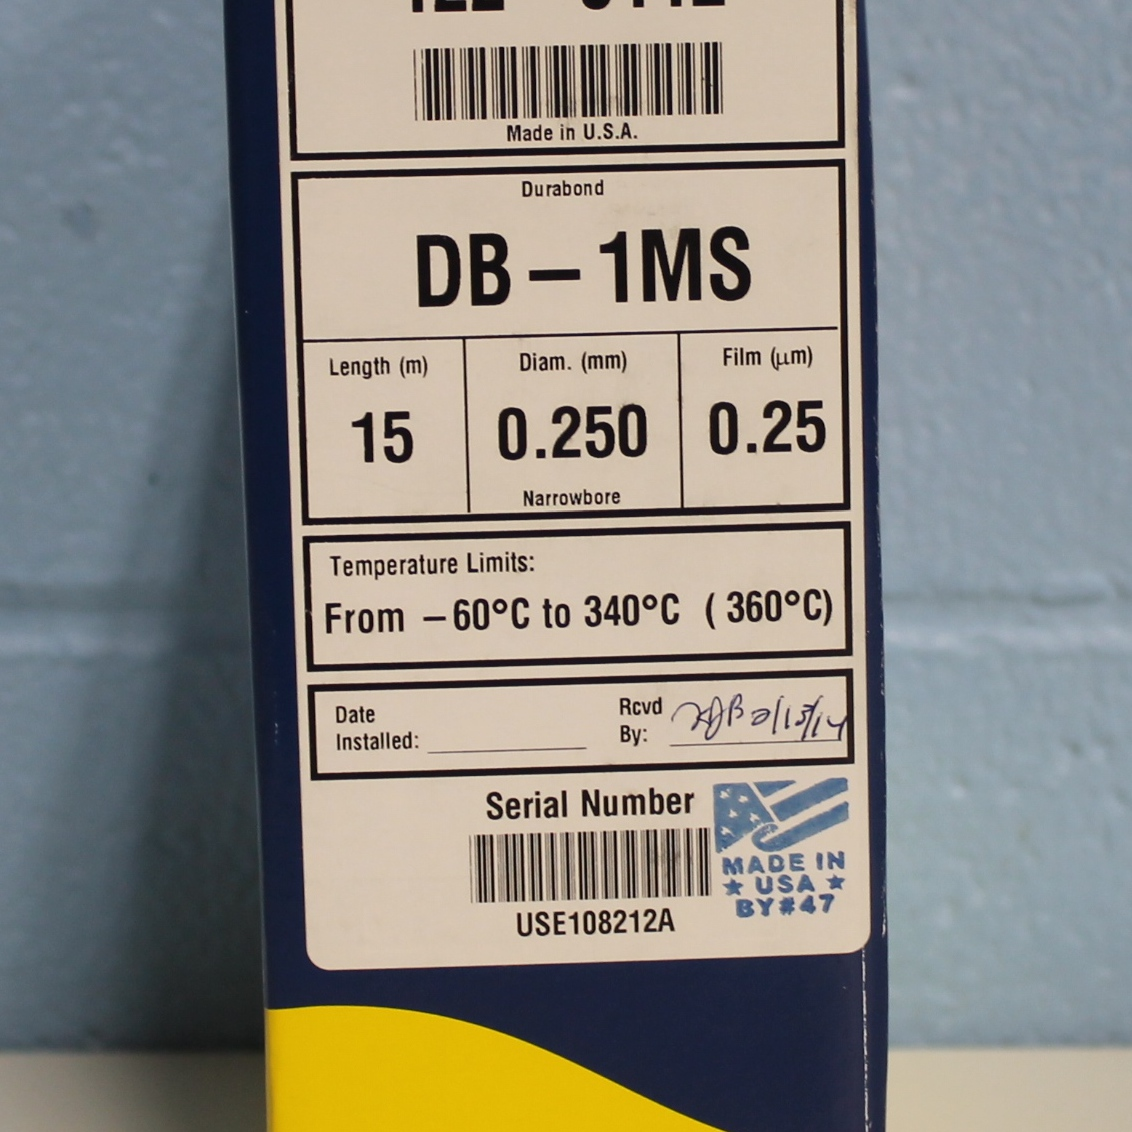 Agilent Technologies J&W DB-1ms GC Column, 15 m, 0.25 mm, 0.25 m, 7 inch cage Image